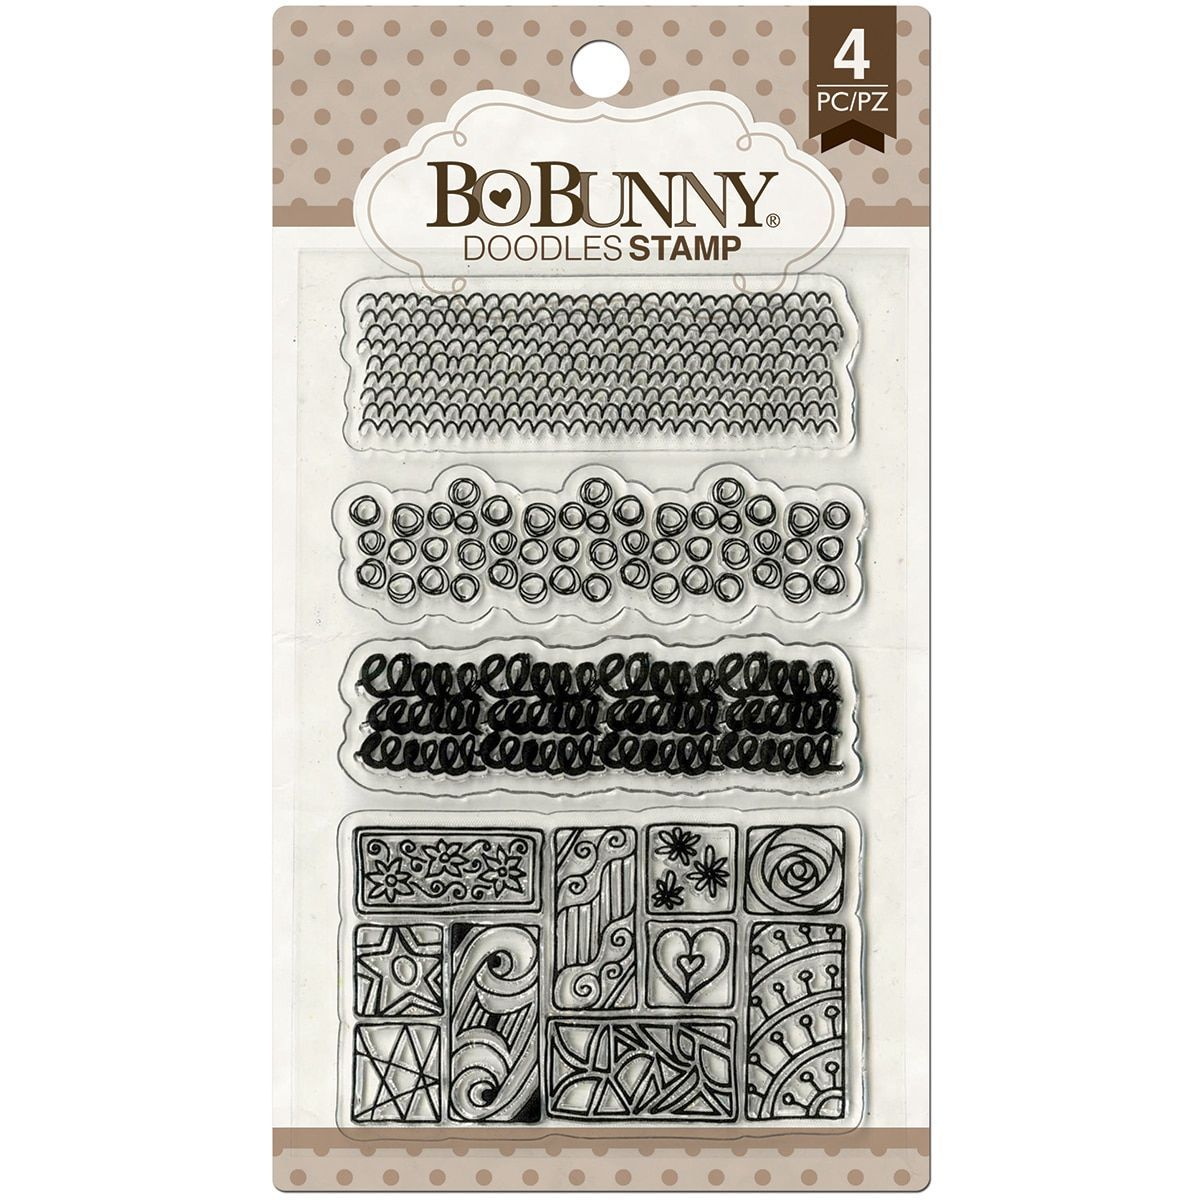 The Craft Bobunny Stamps Doodles Online In India At Best Price